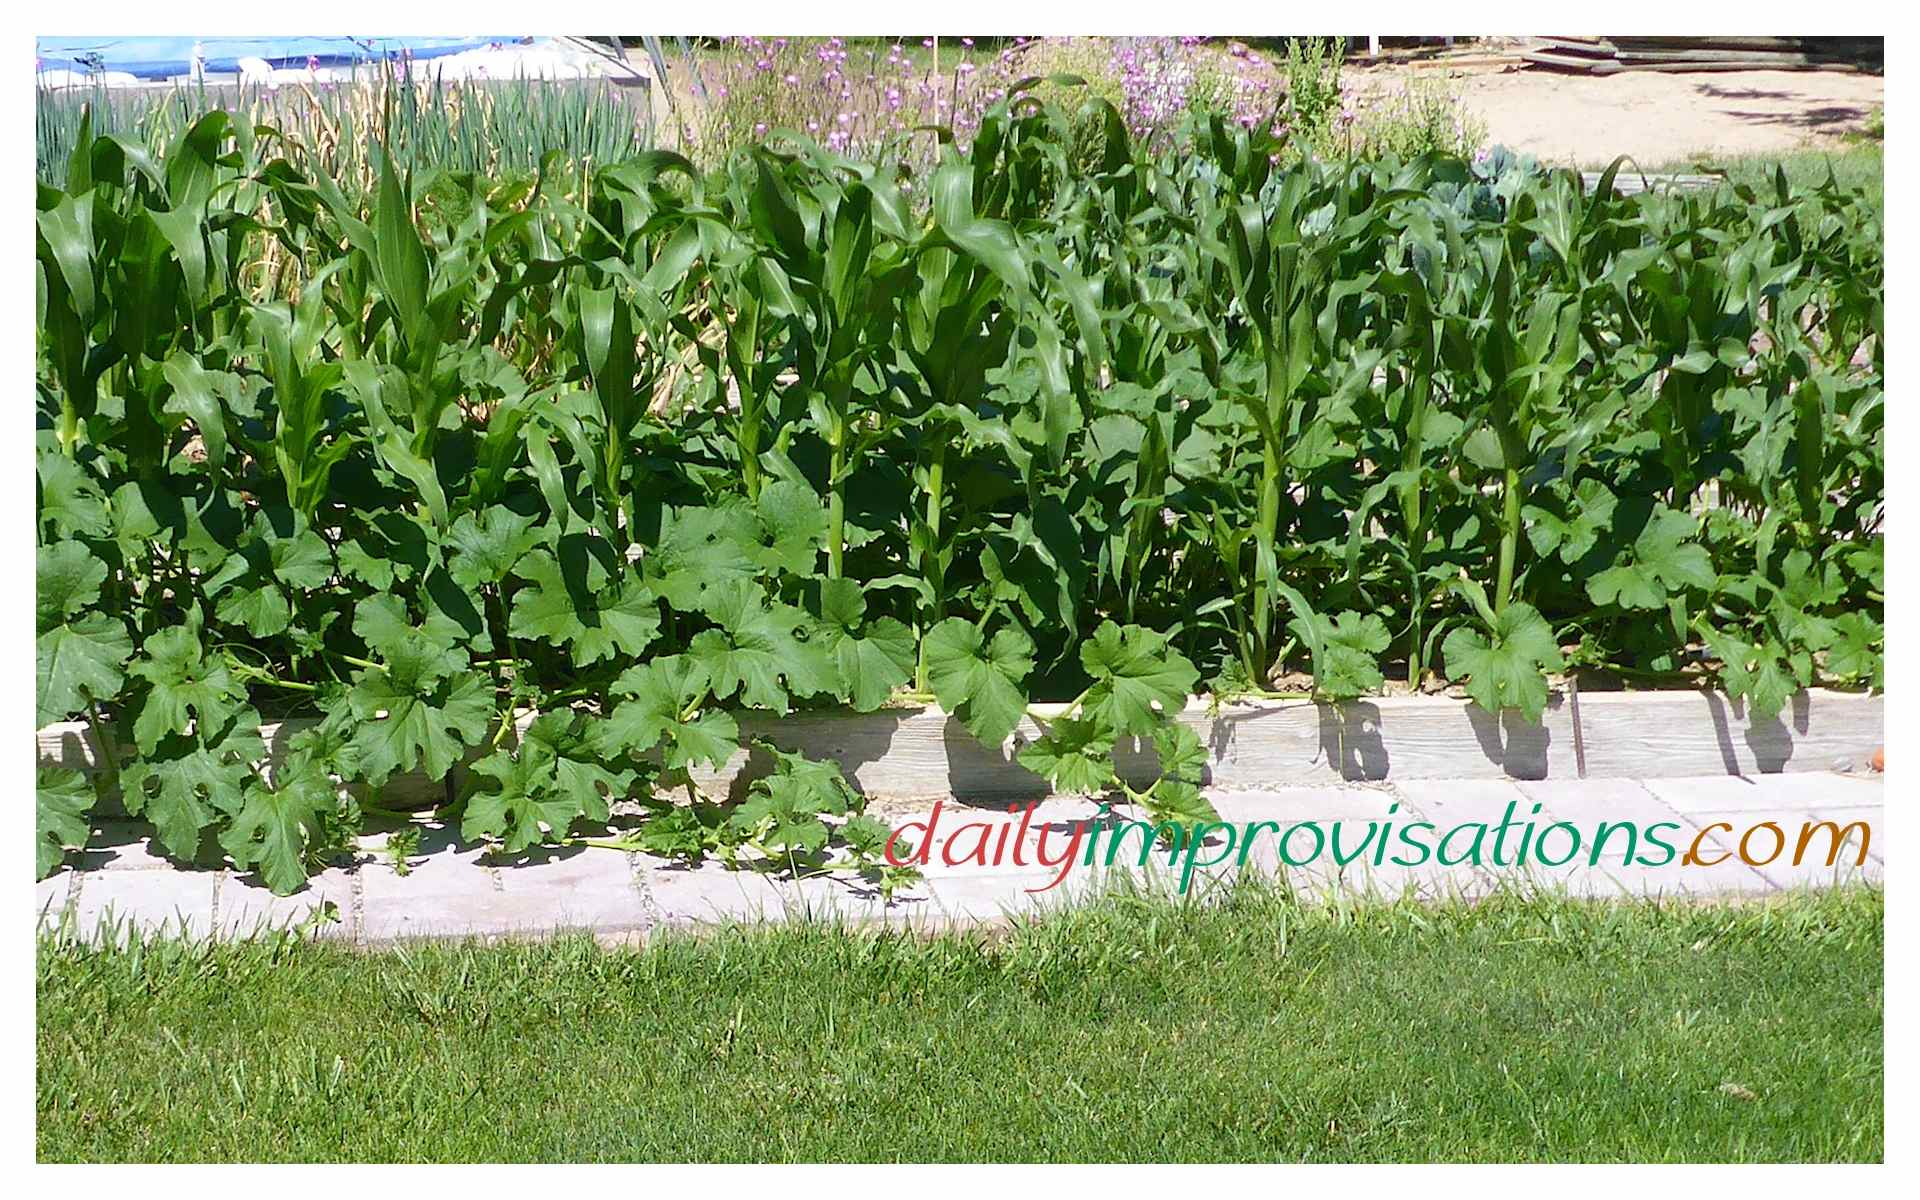 10 ideas for vegetable gardening in small spaces - Vegetable gardening in small spaces image ...